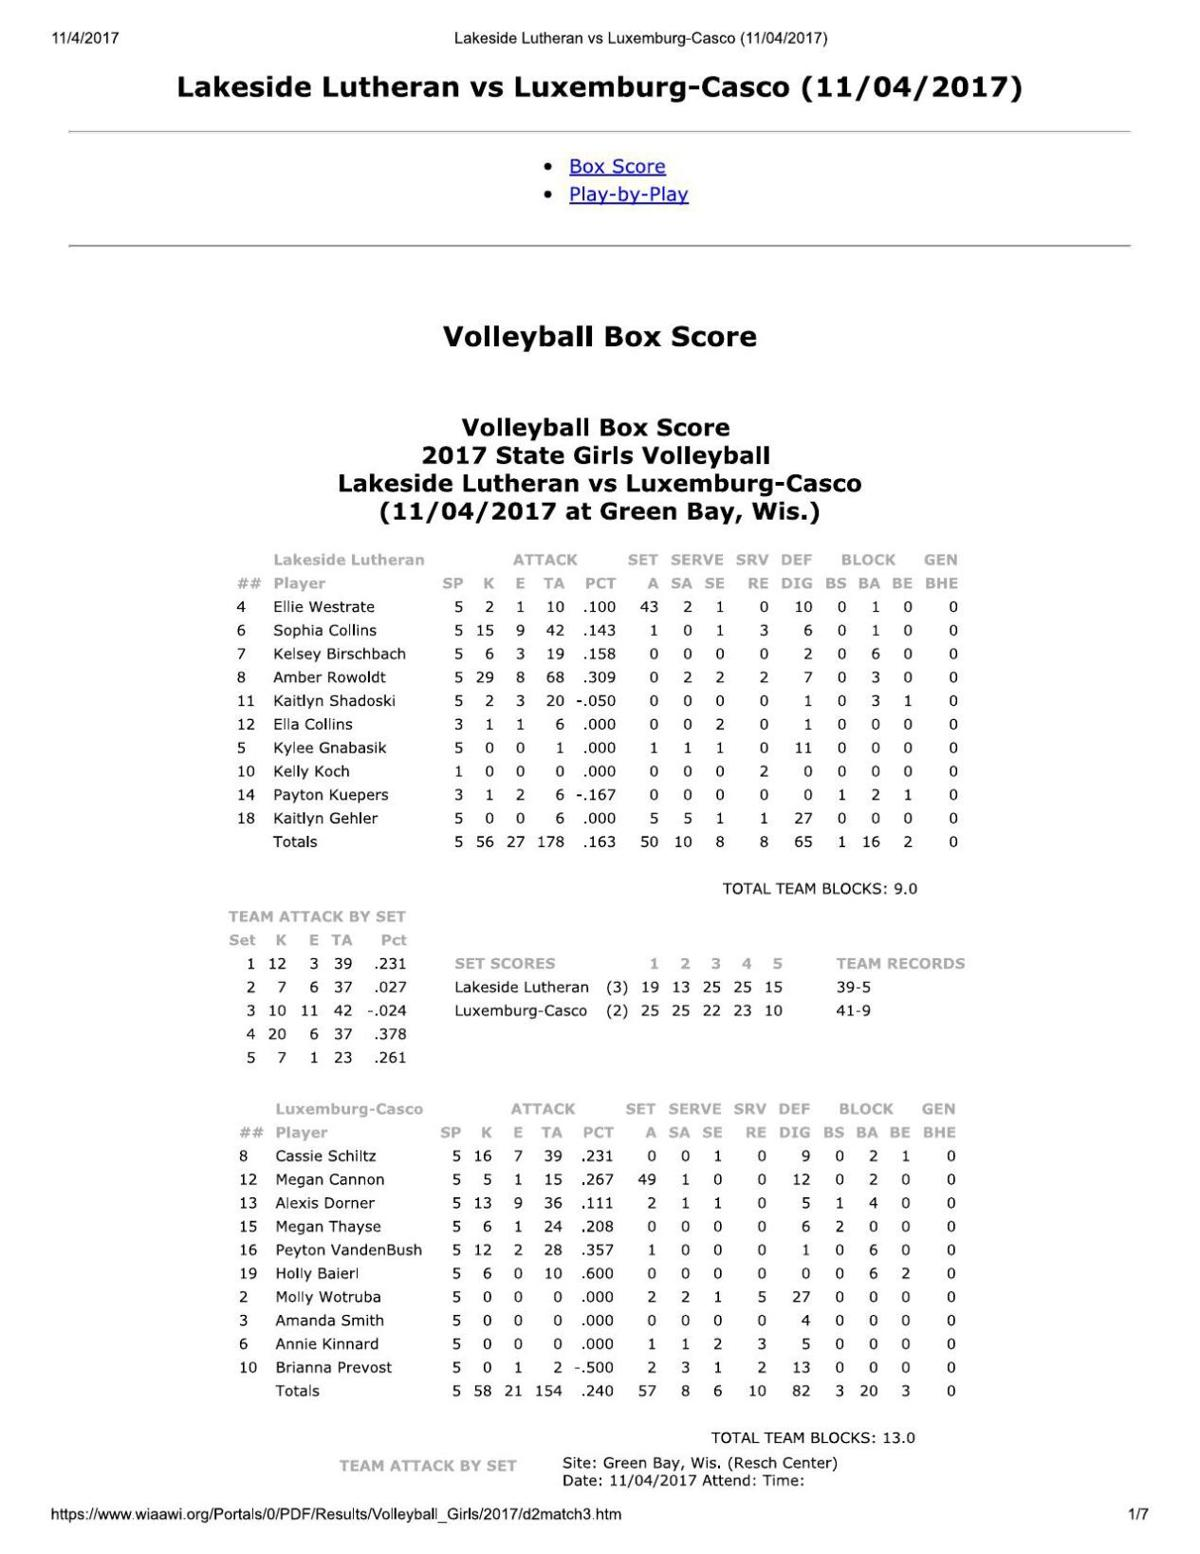 Official statistics, play-by-play: Lakeside Lutheran 3, Luxemburg-Casco 2